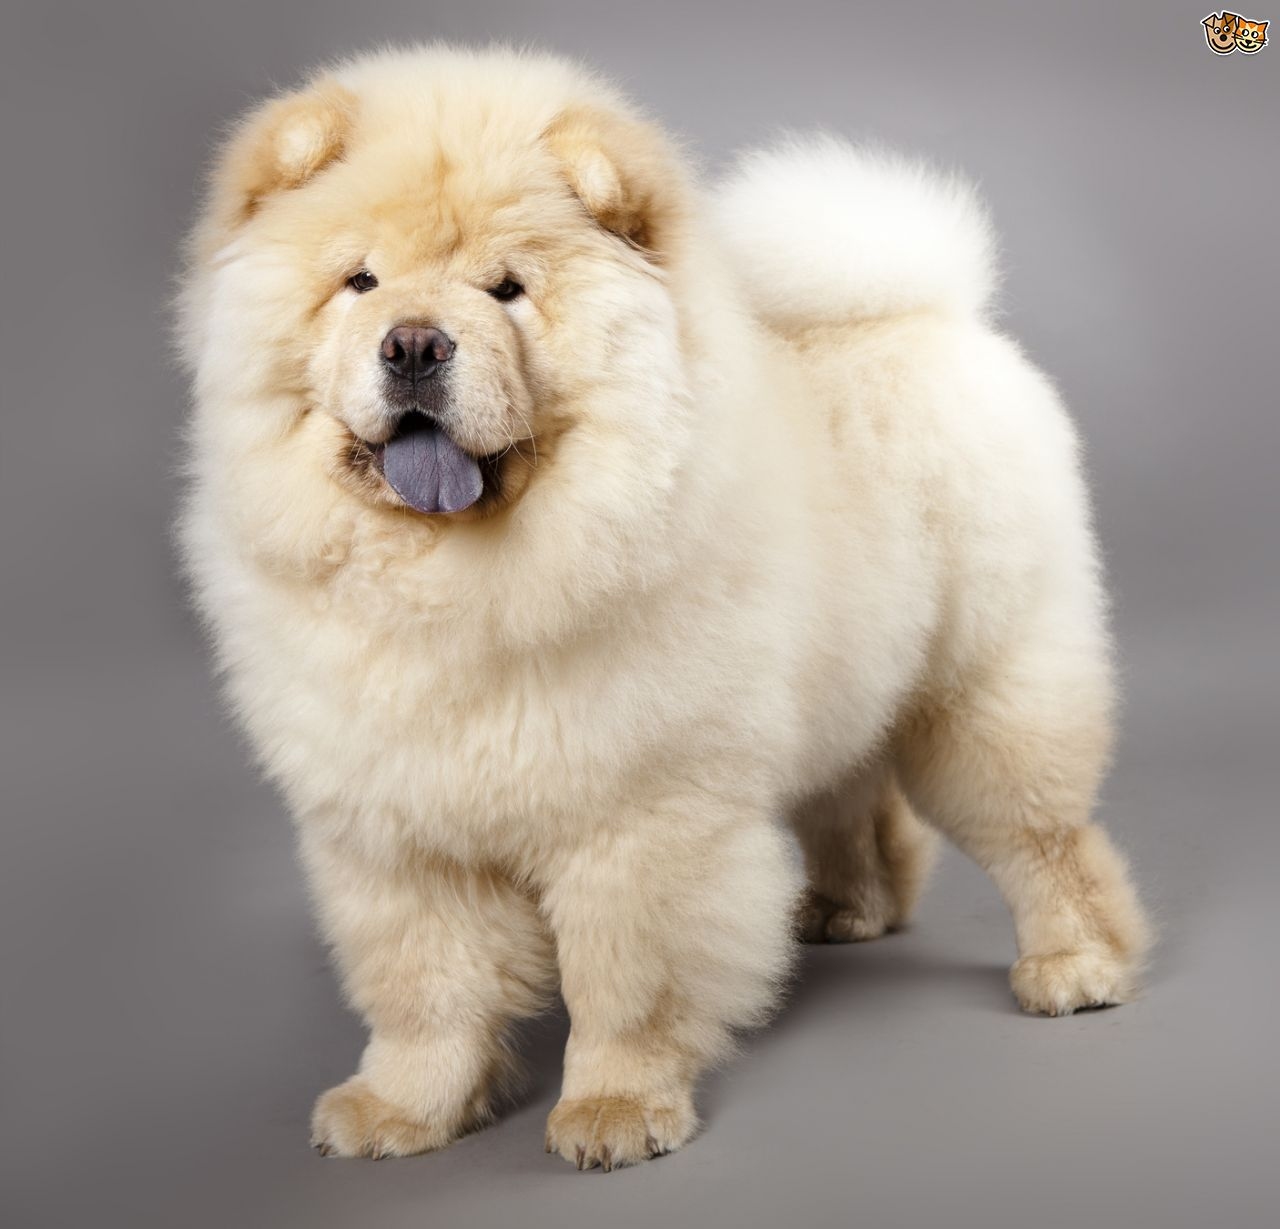 Chow Chow HD wallpapers, Desktop wallpaper - most viewed